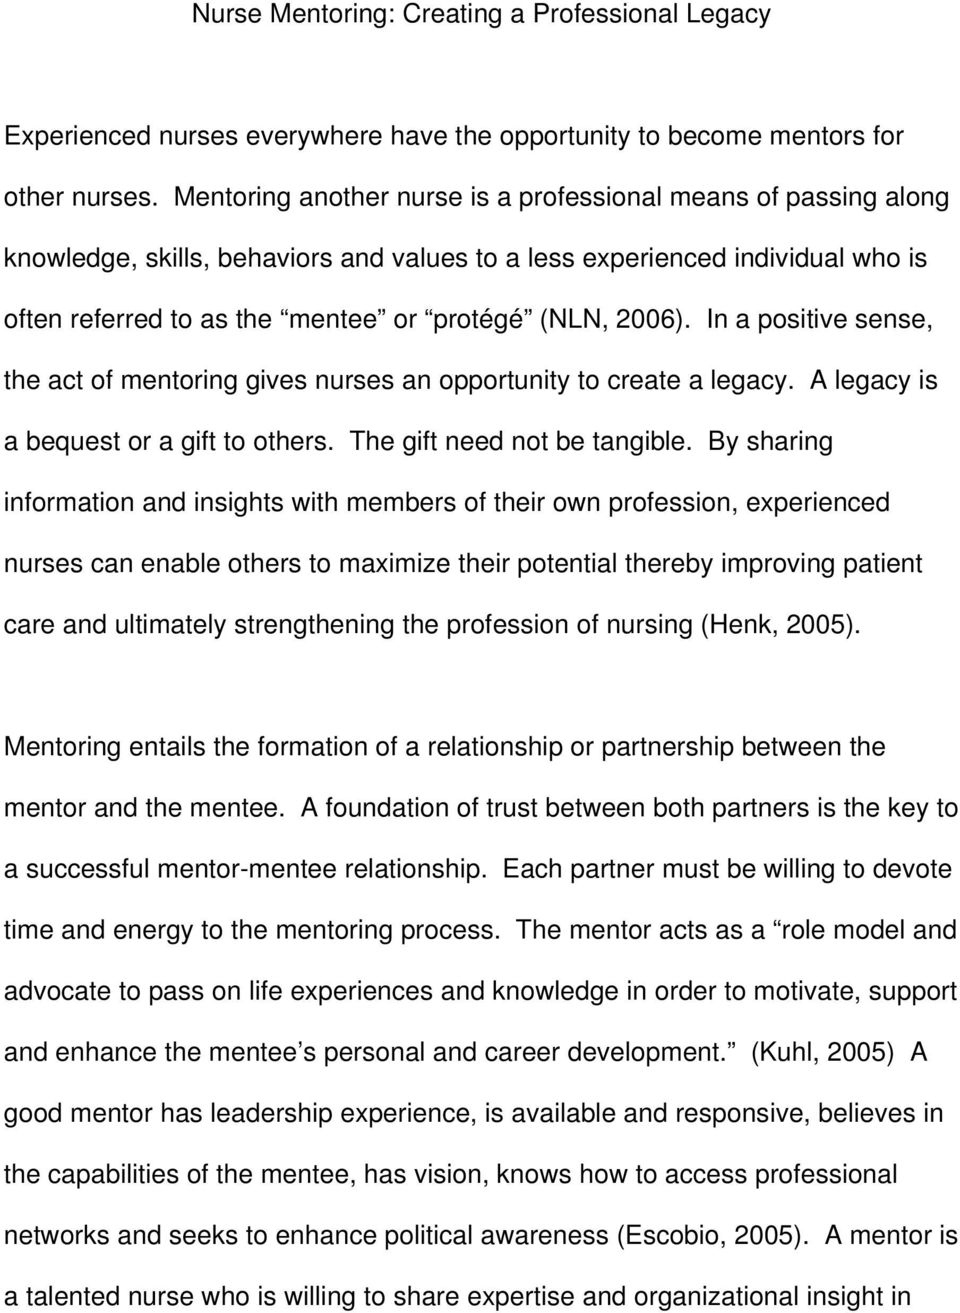 In a positive sense, the act of mentoring gives nurses an opportunity to create a legacy. A legacy is a bequest or a gift to others. The gift need not be tangible.